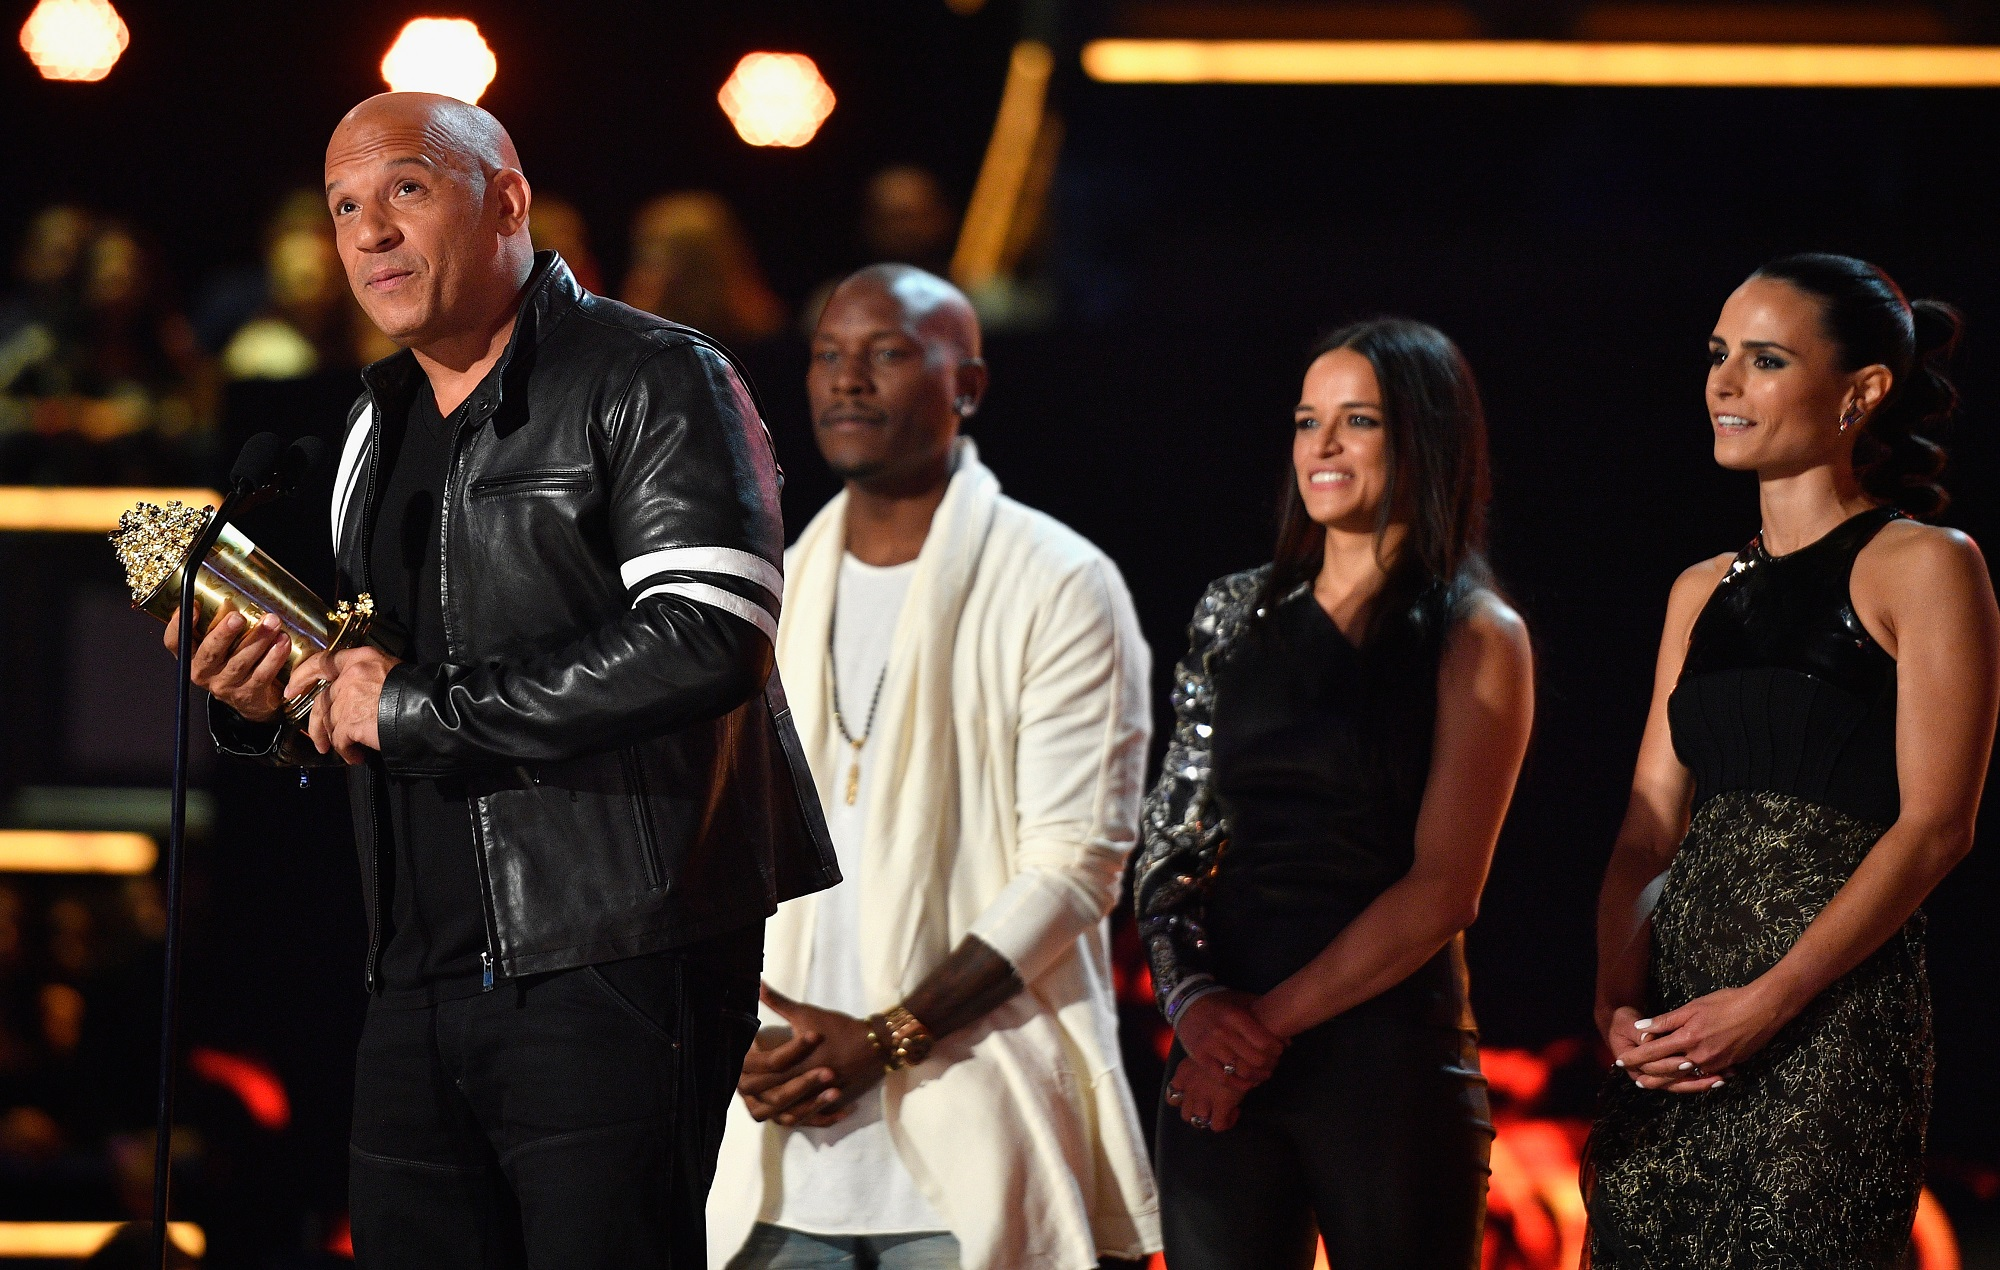 Fast & Furious actors Vin Diesel, Tyrese Gibson, Michelle Rodriguez and Jordana Brewster